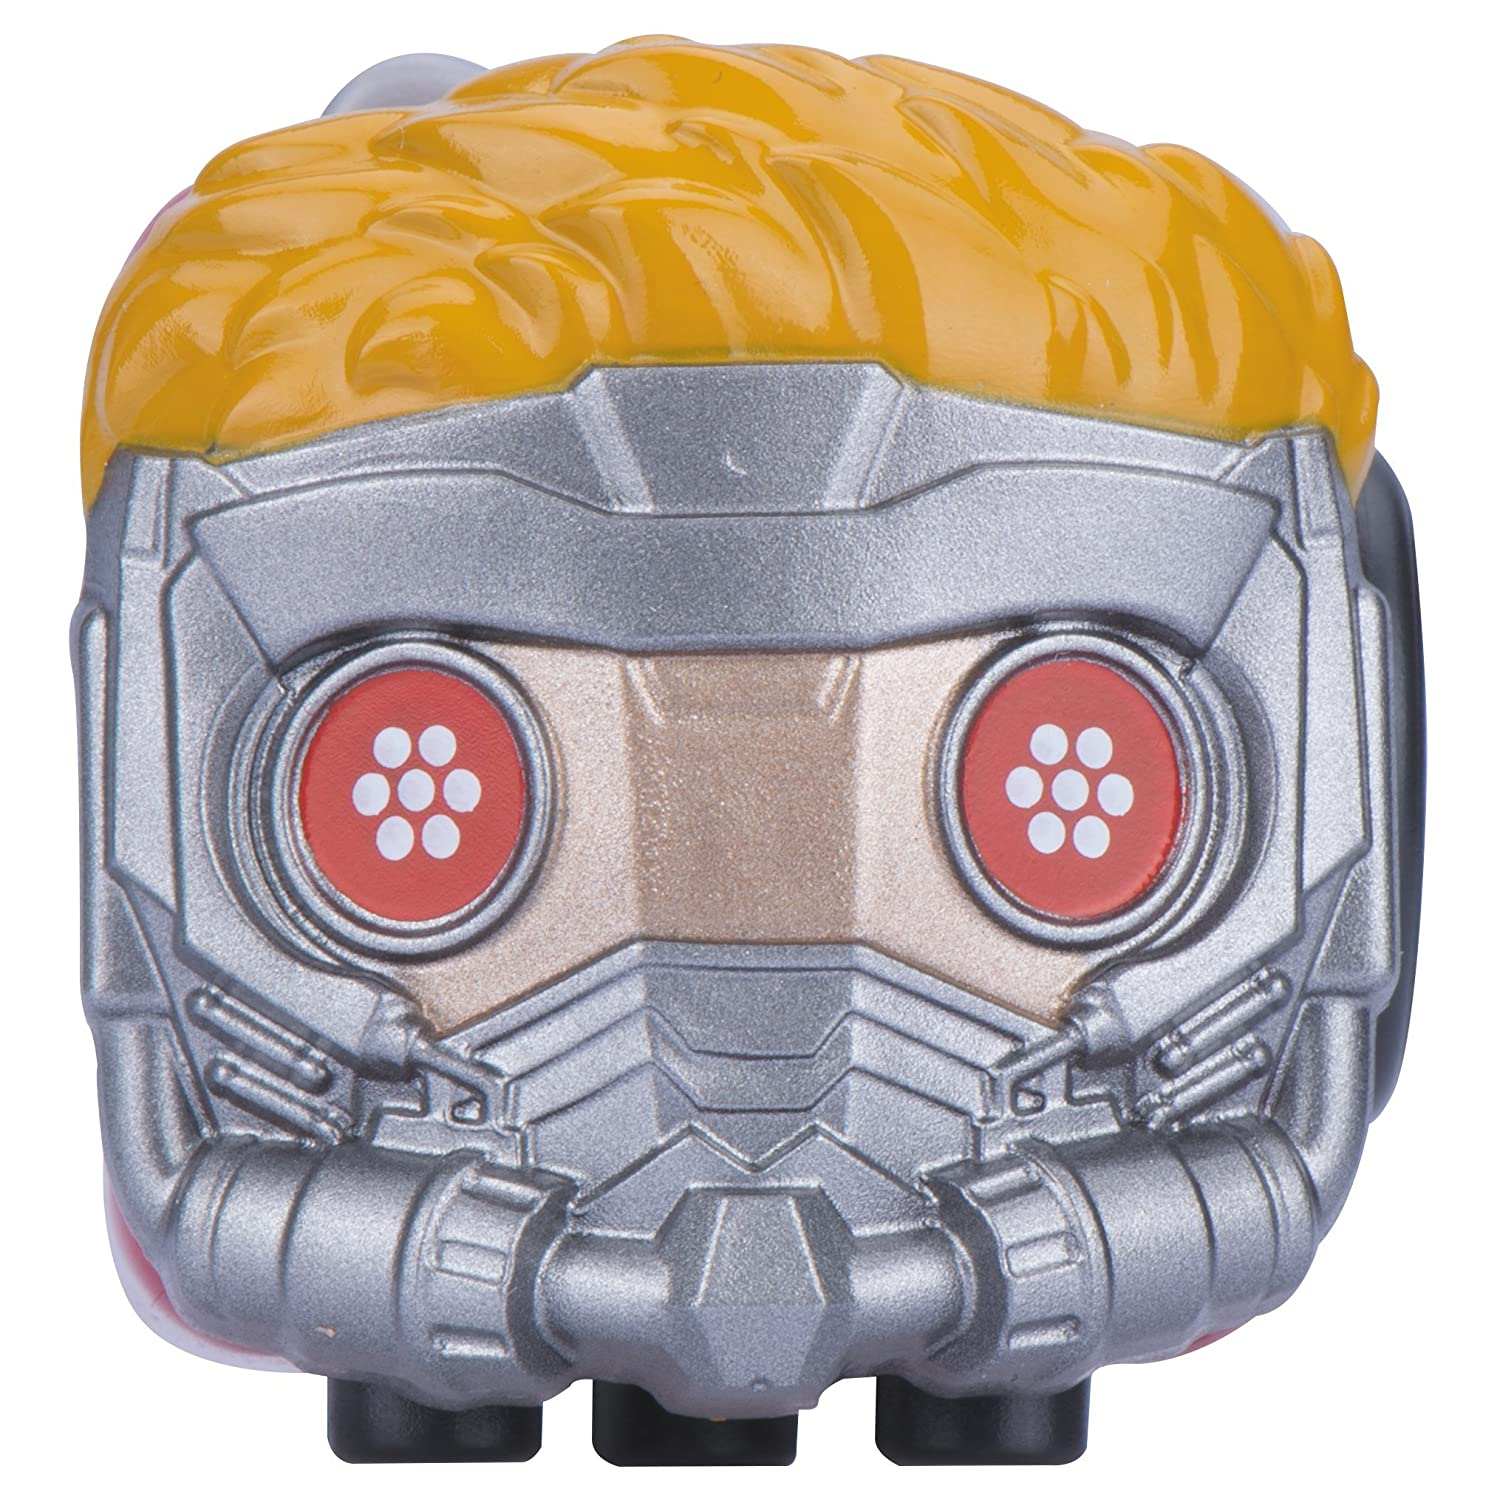 Antsy Labs Marvel Character Fidget Cube Star-Lord Design - Six Functional Sides w/ Anxiety Relief Stone